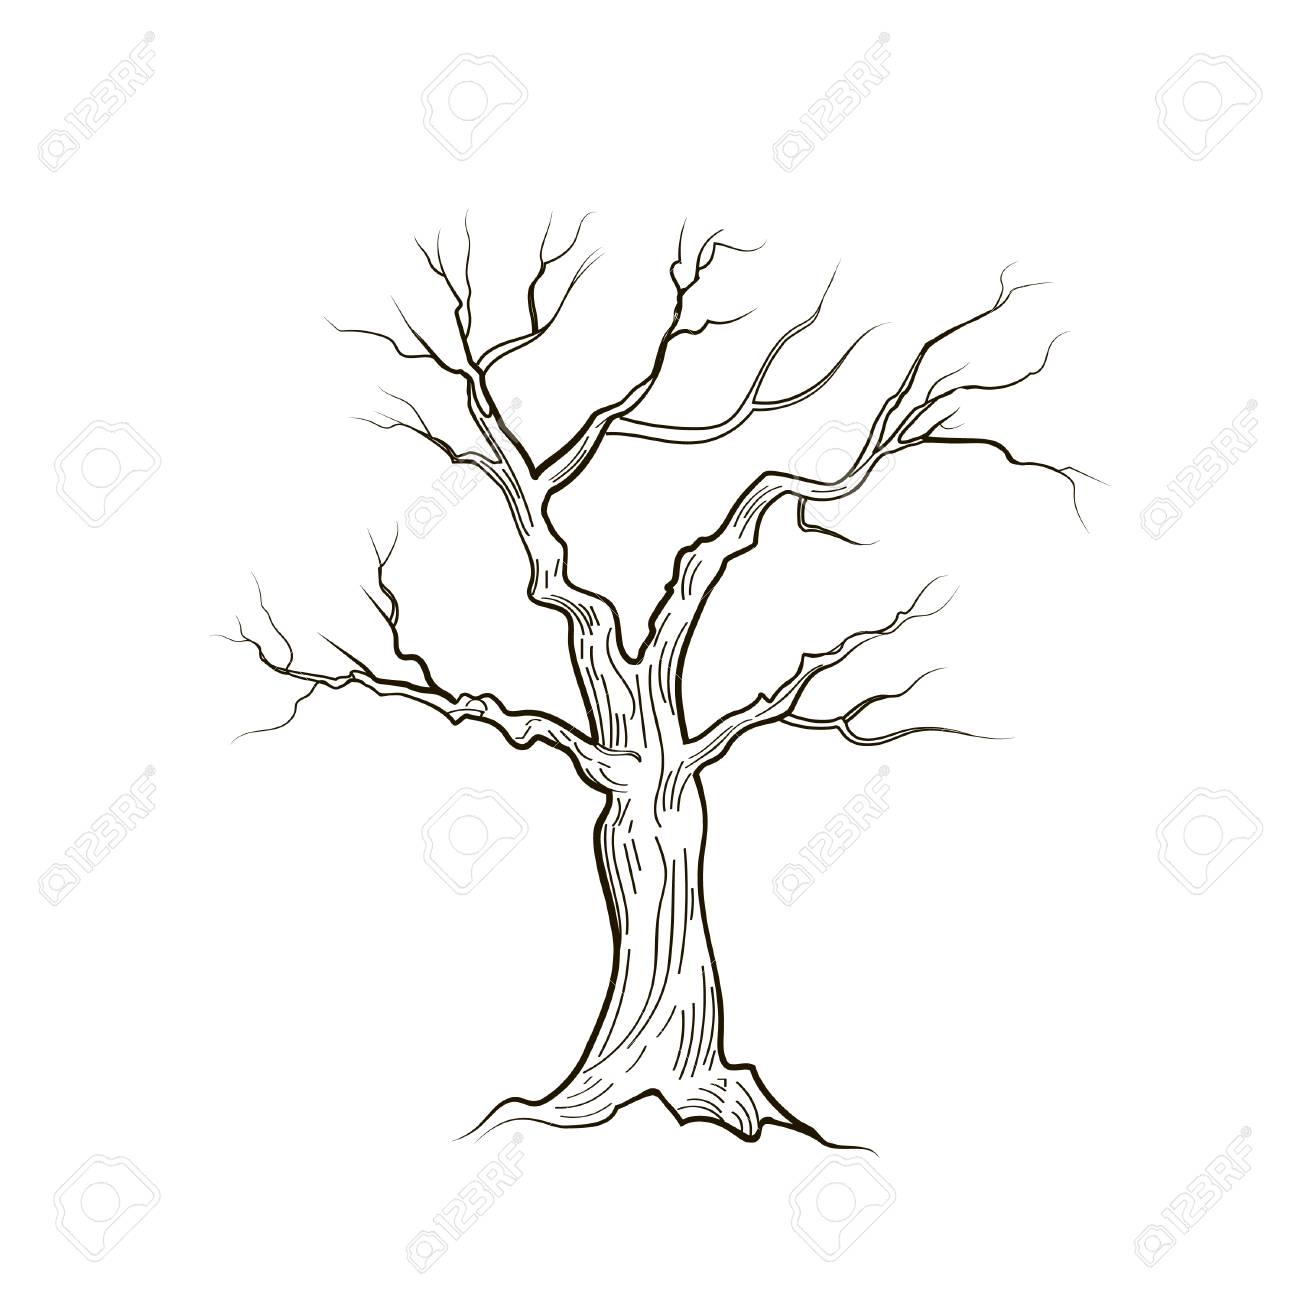 Tree Without Leaves Isolated Nature Sign Vector Sketch Royalty Free Cliparts Vectors And Stock Illustration Image 85319436 I made 7 drawings of various trees with step by step instructions. tree without leaves isolated nature sign vector sketch royalty free cliparts vectors and stock illustration image 85319436